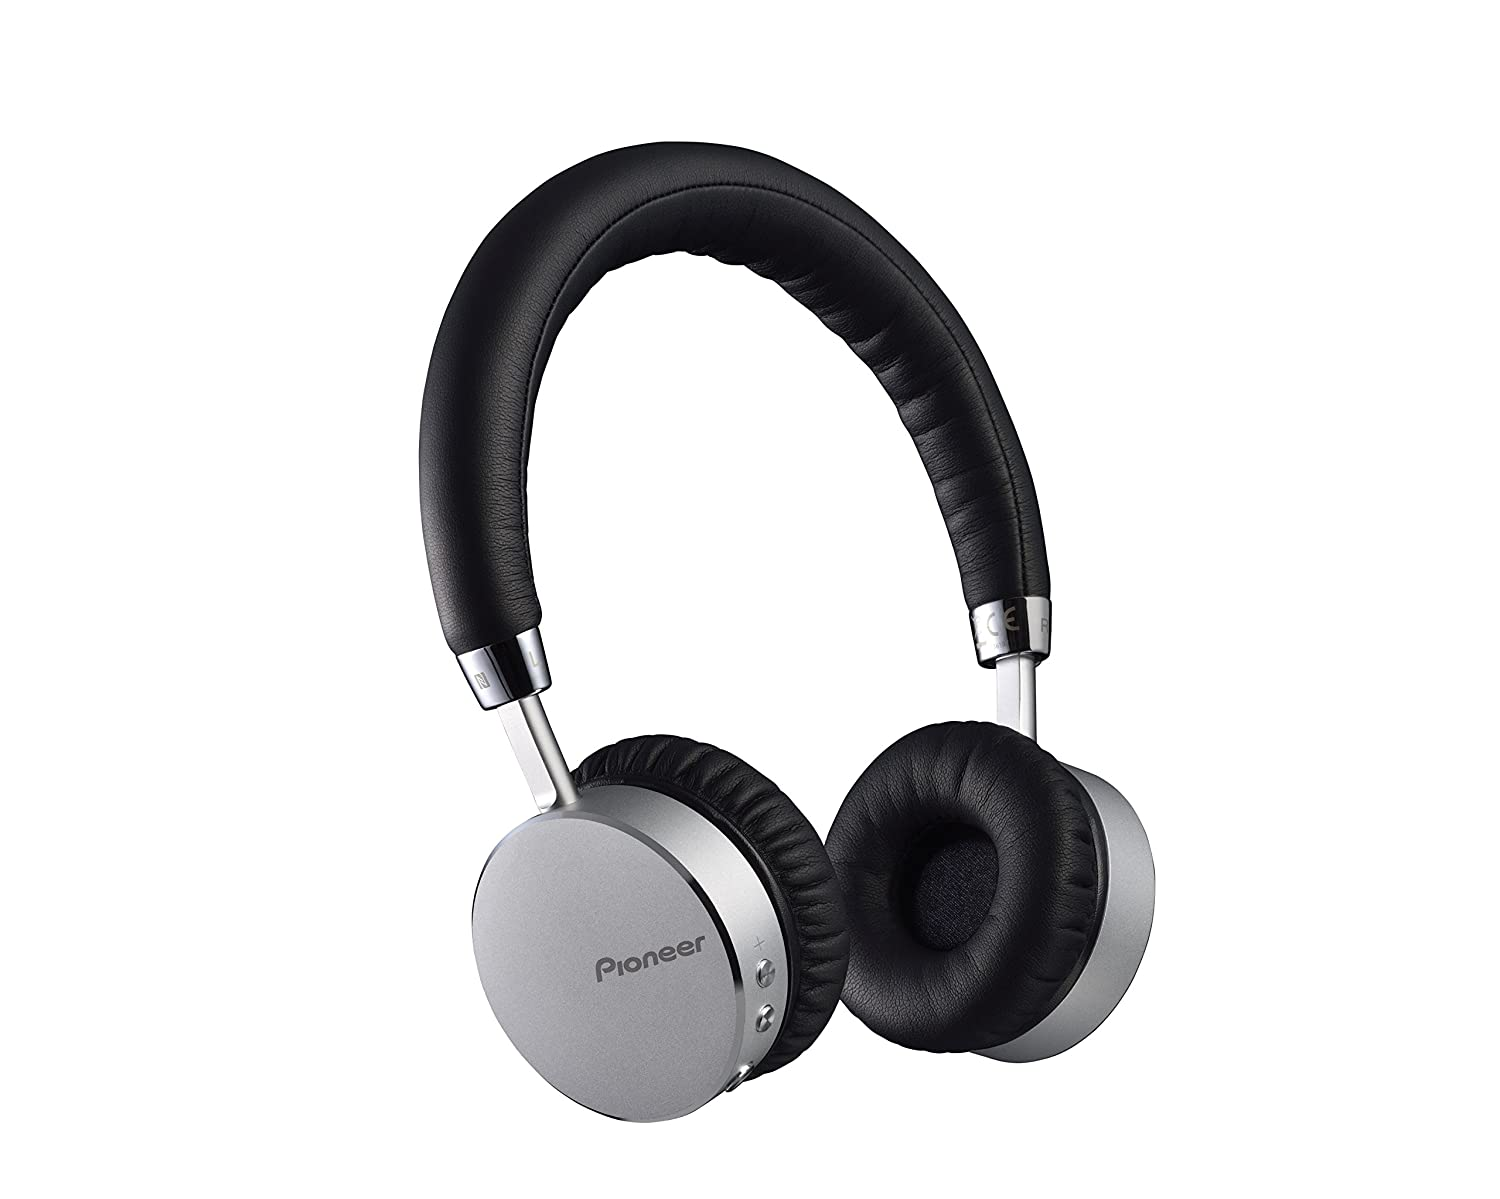 Pioneer Bluetooth-Enabled Wireless Headphone of NFC Featured SE-MJ561BT-S